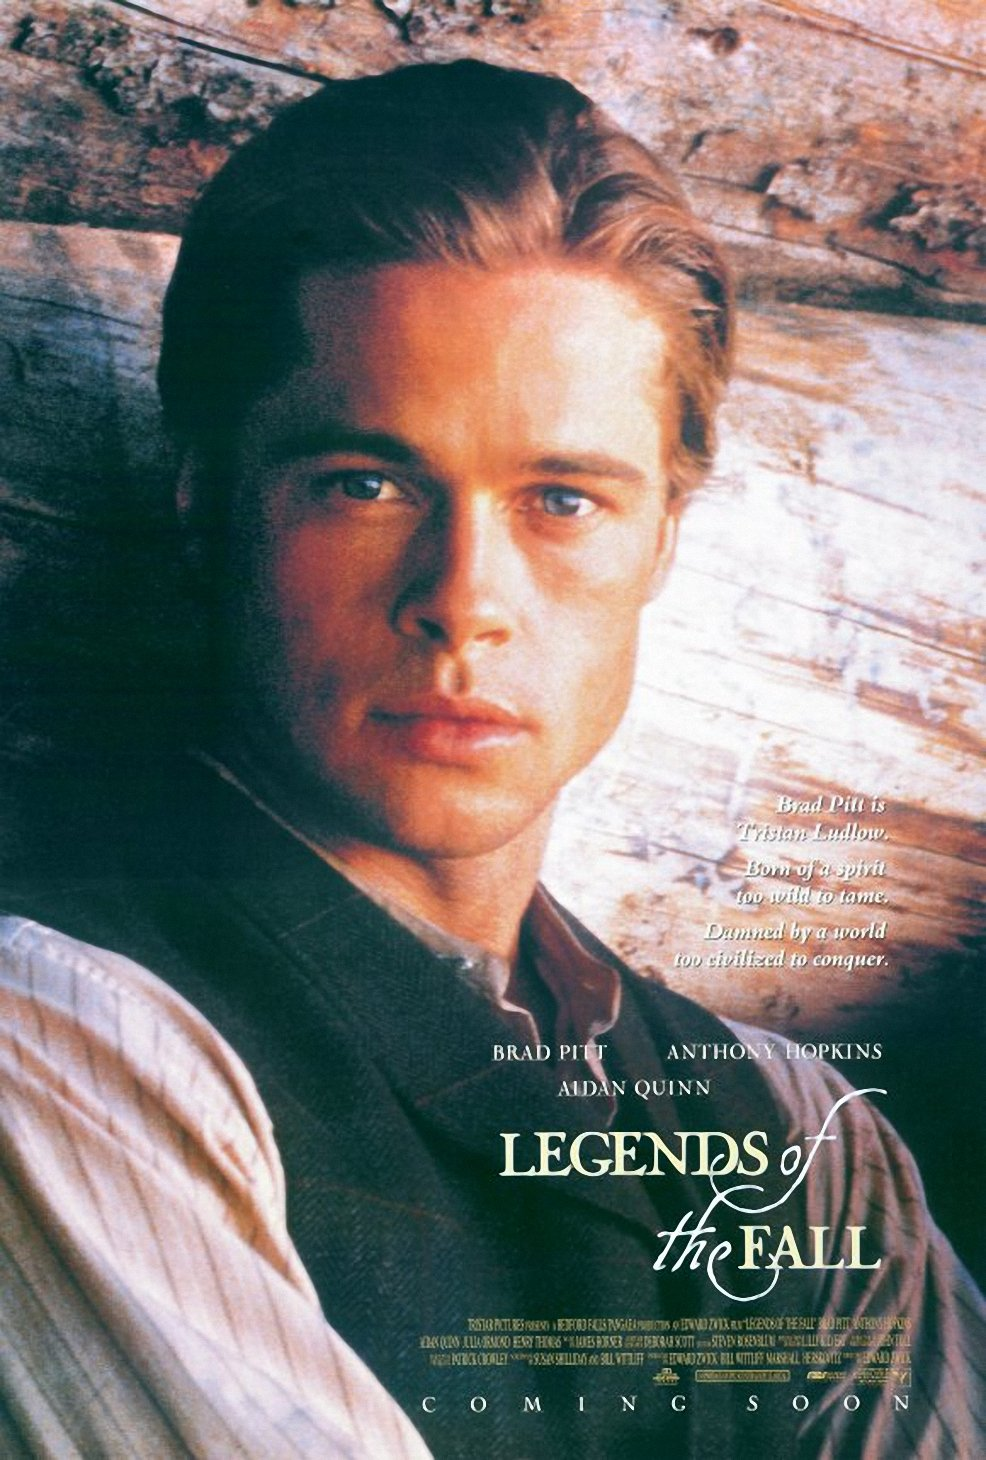 Brad pitt pictures from legends of the fall